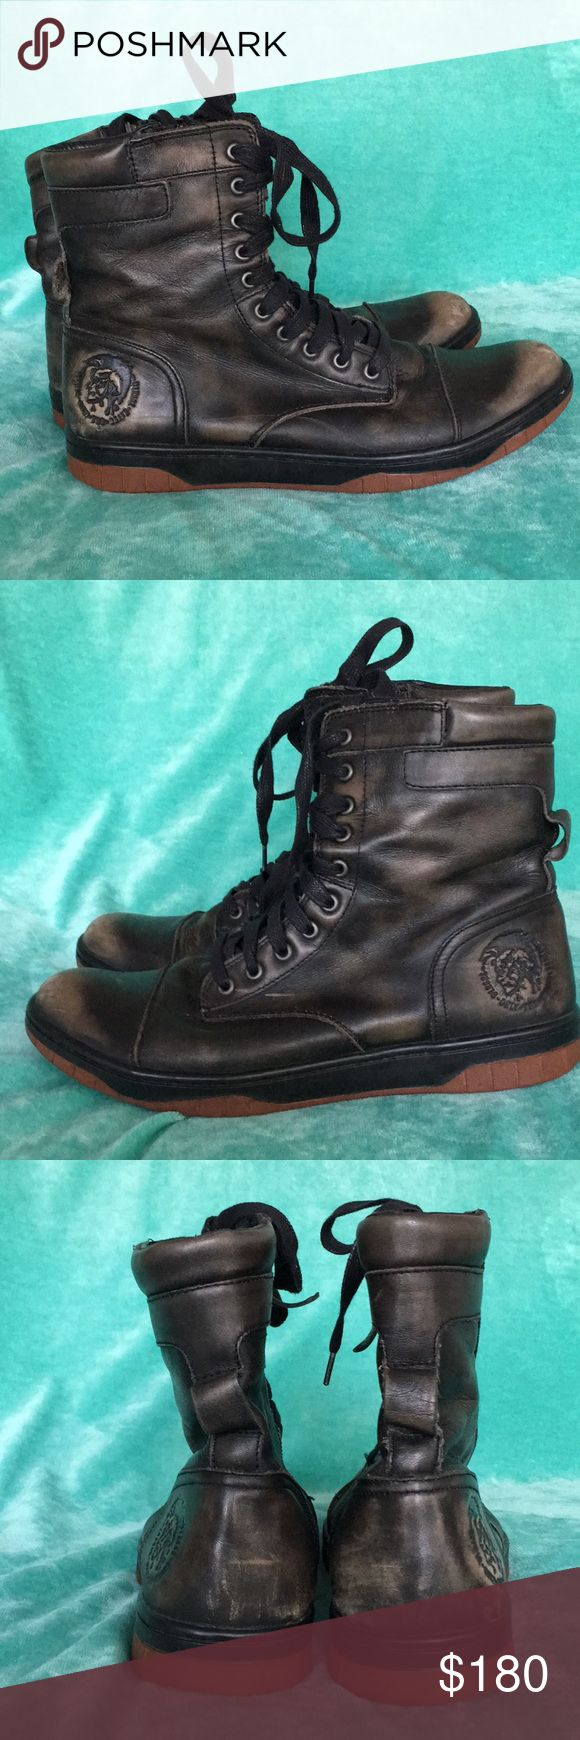 Diesel Boots Only worn a few times, in great condition. Pre- distressed by Diesel. There is a hairline super thin scuff on the right shoe. Size 10.5. Made from treated leather, boot is set on a rubber sneaker sole, providing traction and flexibility. No box.   100% leather Lace-up boot Zip closure Rubber sole Diesel Shoes Boots